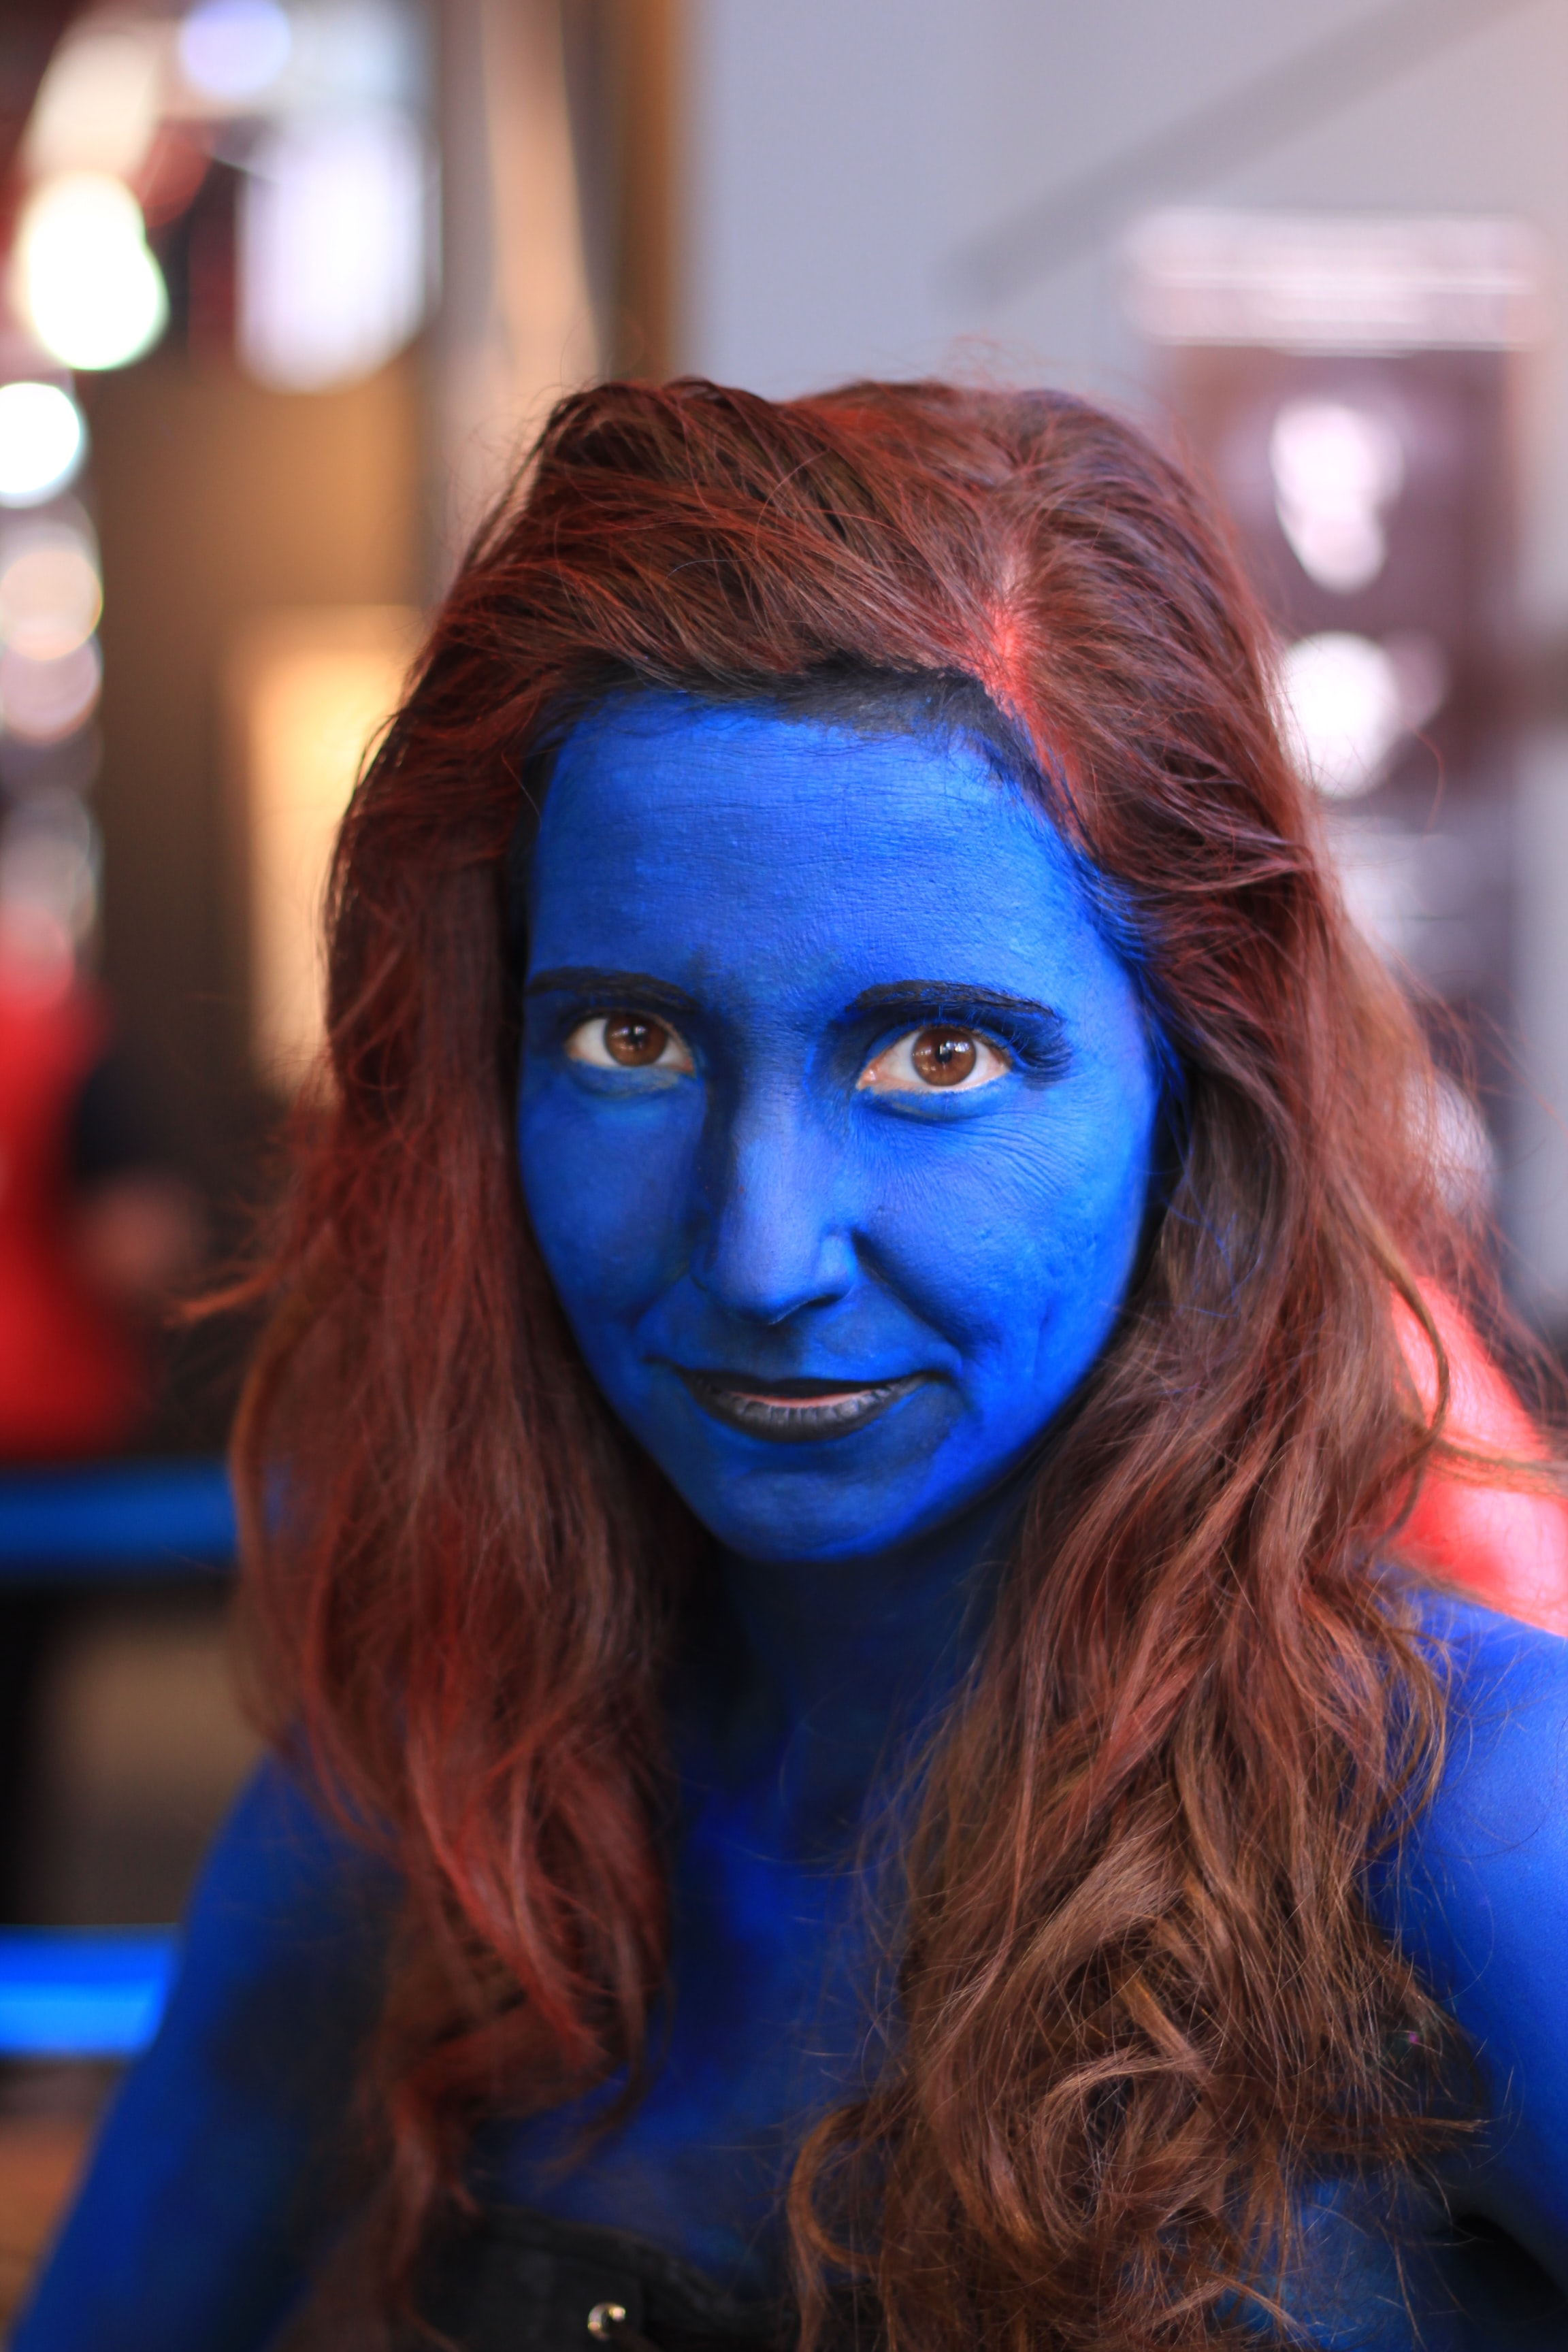 woman with blue bodypaint in selective focus photography